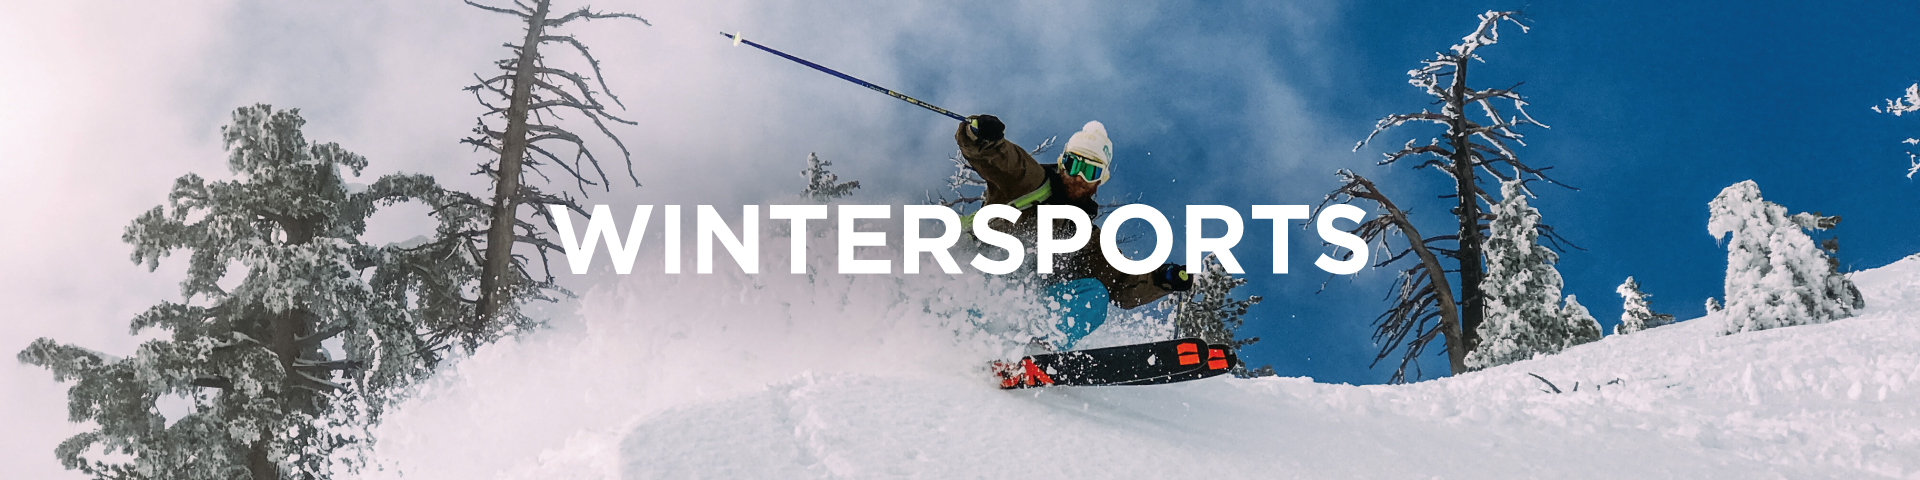 Wintersports Department